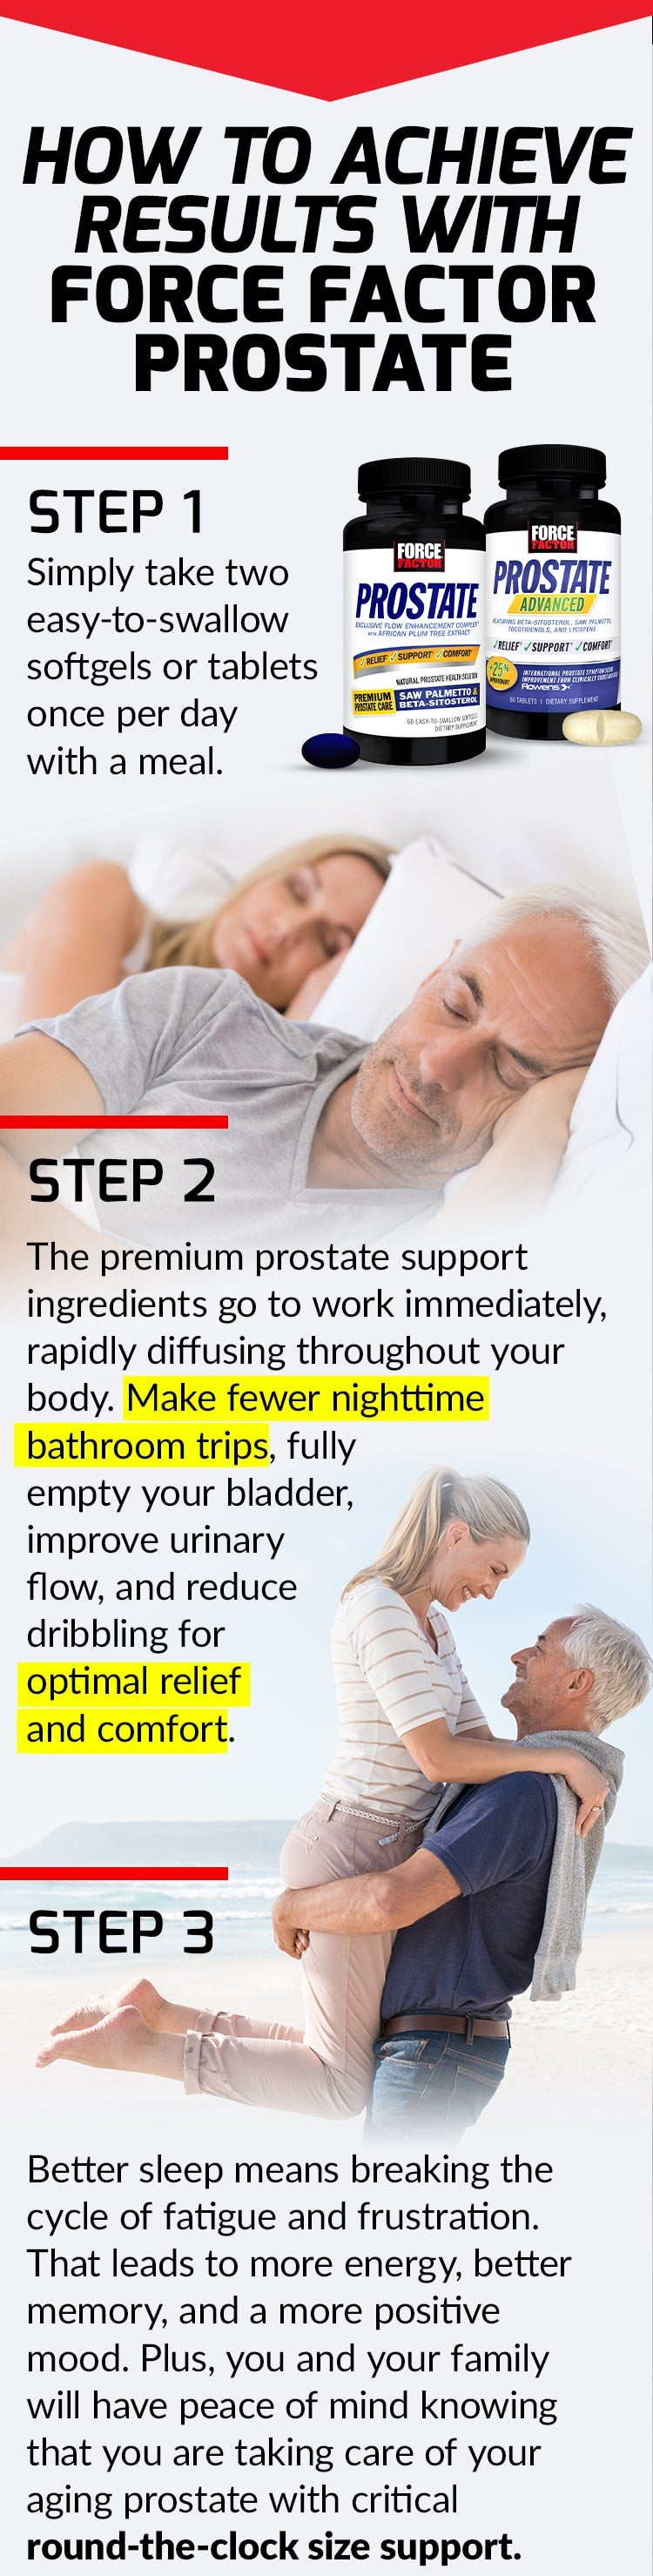 HOW TO ACHIEVE RESULTS WITH FORCE FACTOR PROSTATE. STEP 1. Simply take two easy-to-swallow softgels or tablets once per day with a meal. STEP 2. The premium prostate support ingredients go to work immediately, rapidly diffusing throughout your body. Make fewer nighttime bathroom trips, fully empty your bladder, improve urinary flow, and reduce dribbling for optimal relief and comfort. STEP 3. Better sleep means breaking the cycle of fatigue and frustration. That leads to more energy, better memory, and a more positive mood. Plus, you and your family will have peace of mind knowing that you are taking care of your aging prostate with critical round-the-clock size support.